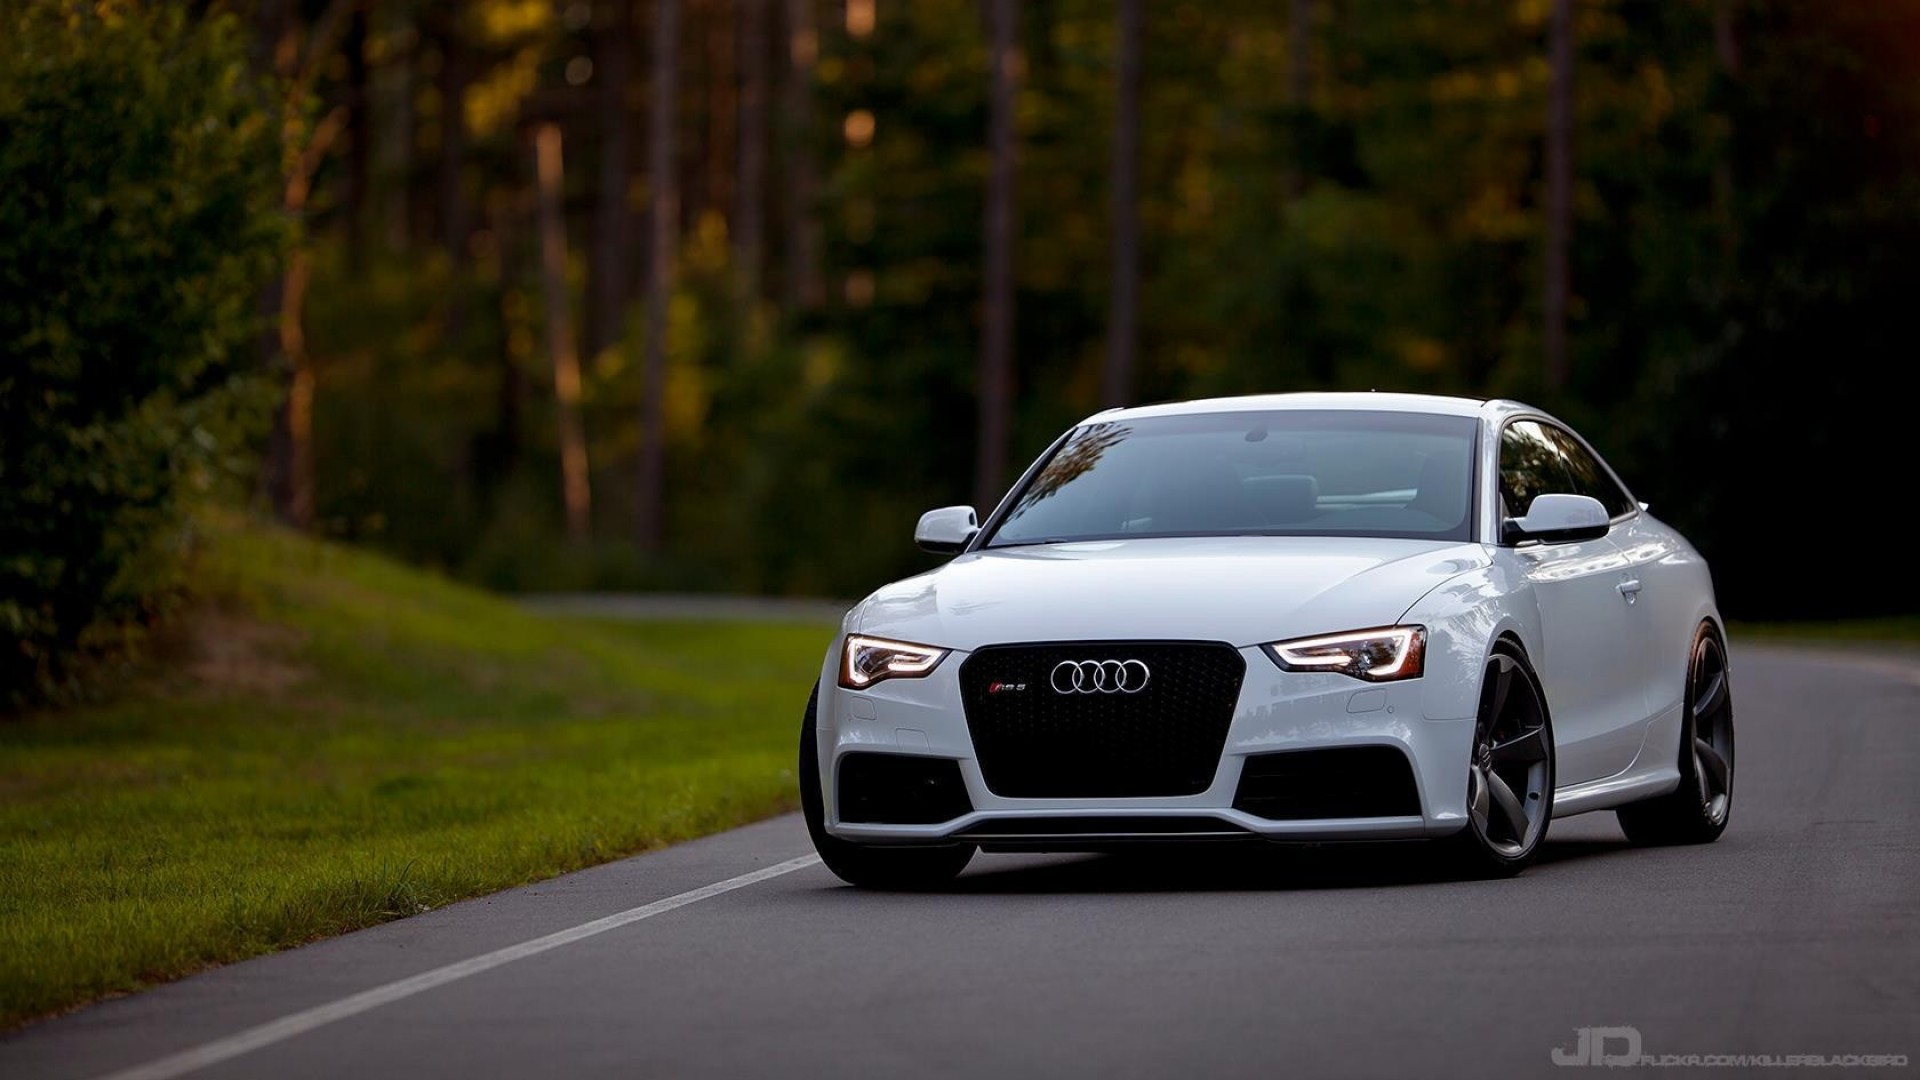 White Cars Audi S5 Luxury Sport Wallpaper | Cars Gallery – New .